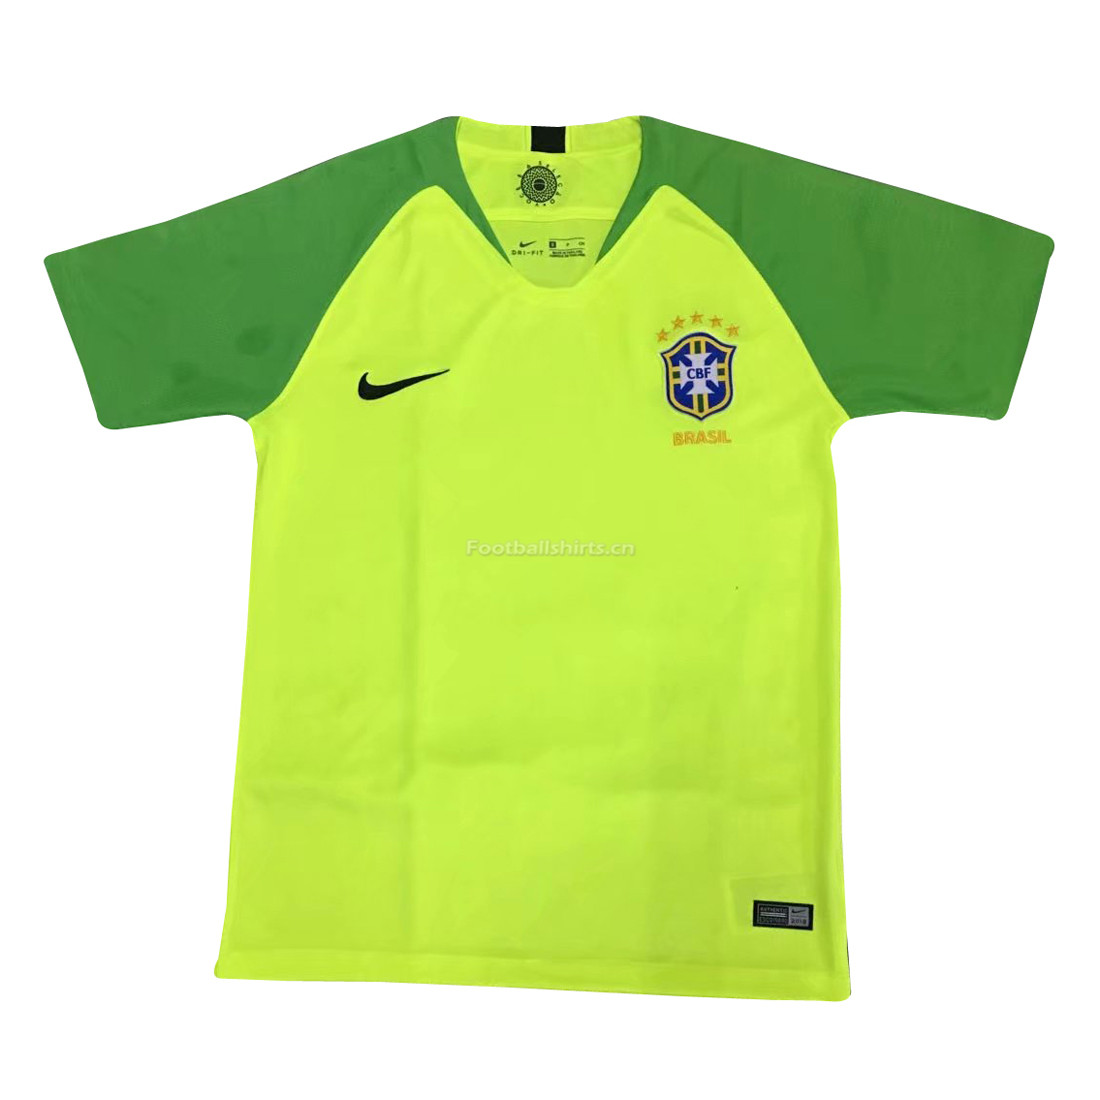 Brazil 2018 World Cup Green Goalkeeper Soccer Jersey